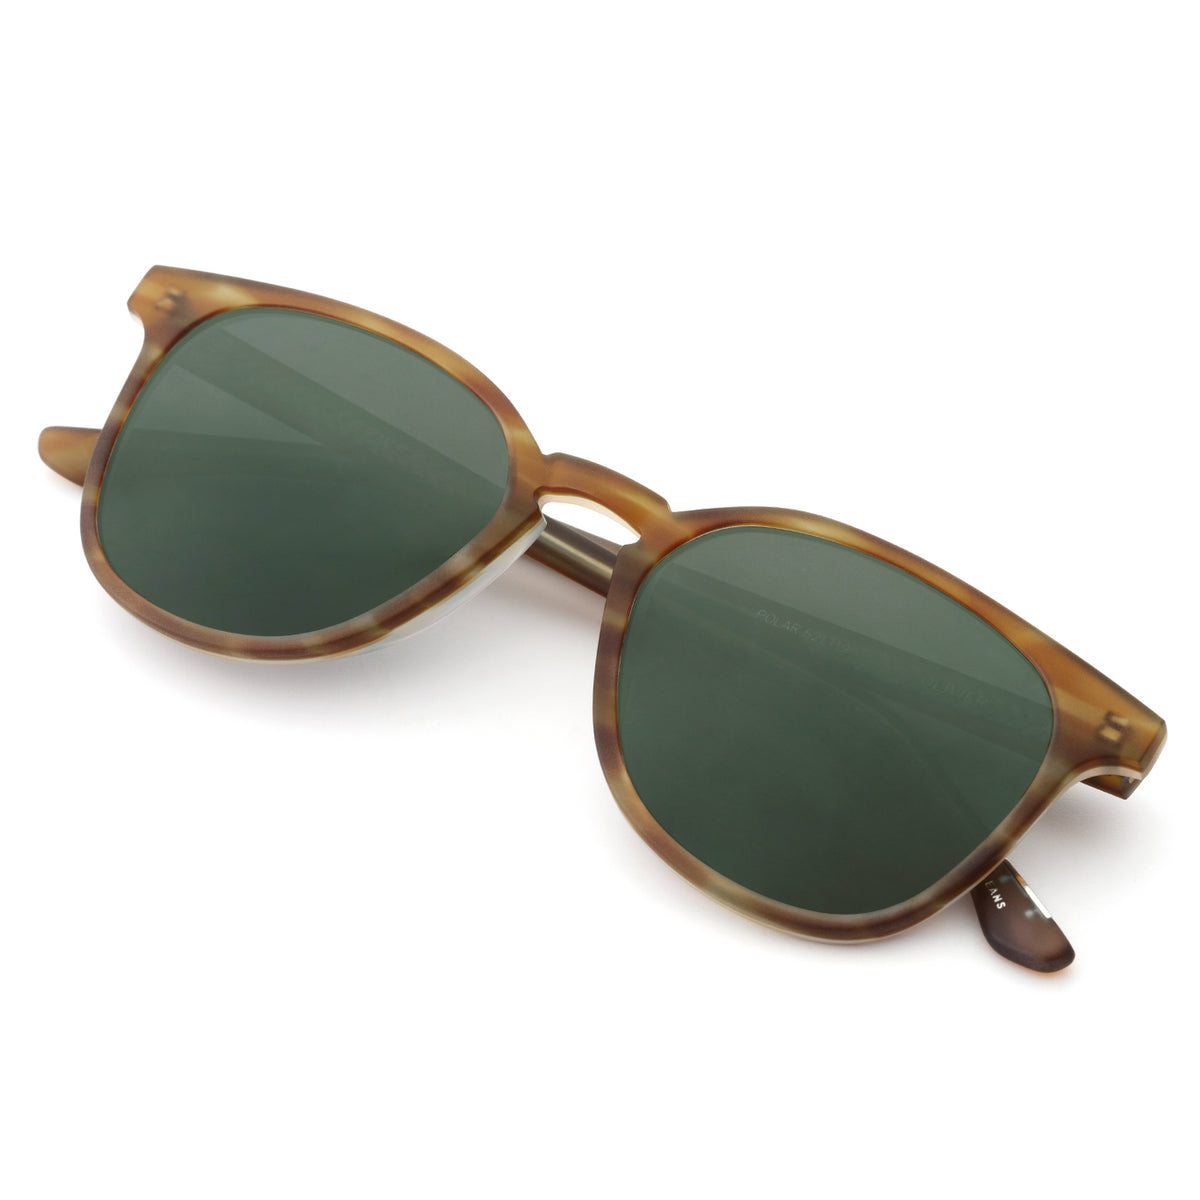 OLIVIER | Matte Willow Polarized handcrafted acetate sunglasses